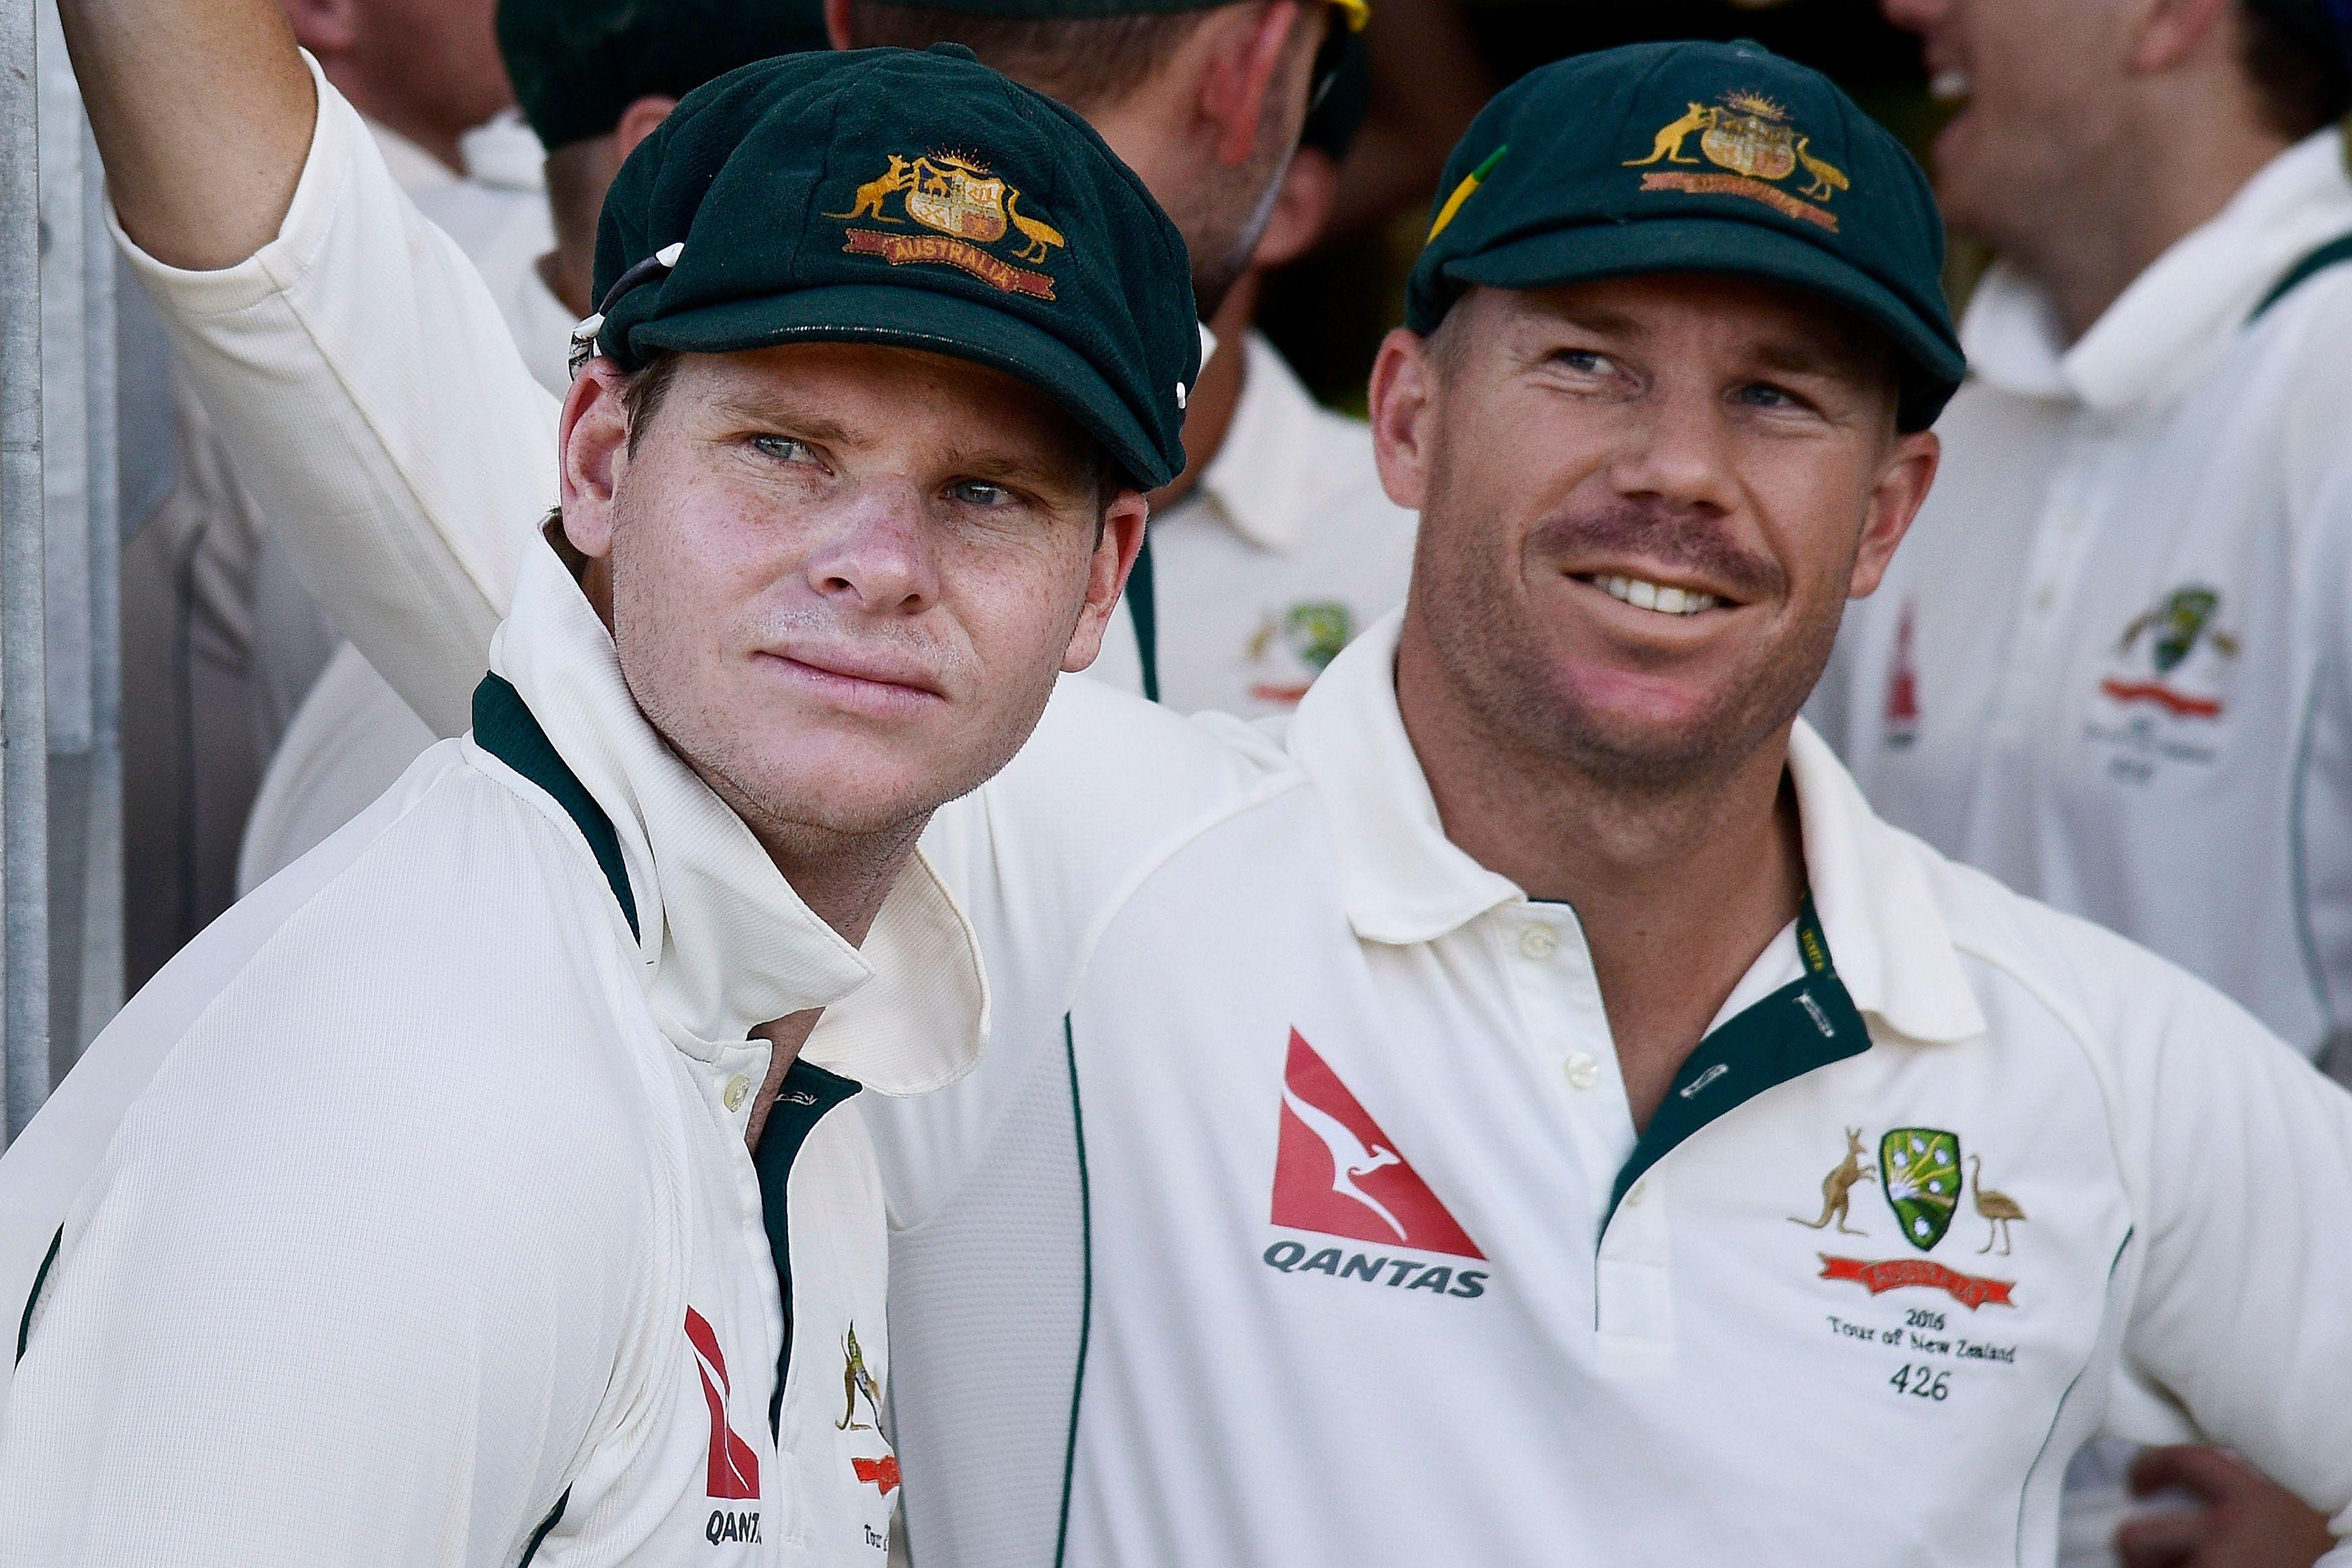 Steve Smith and David Warner were caught cheating against South Africa